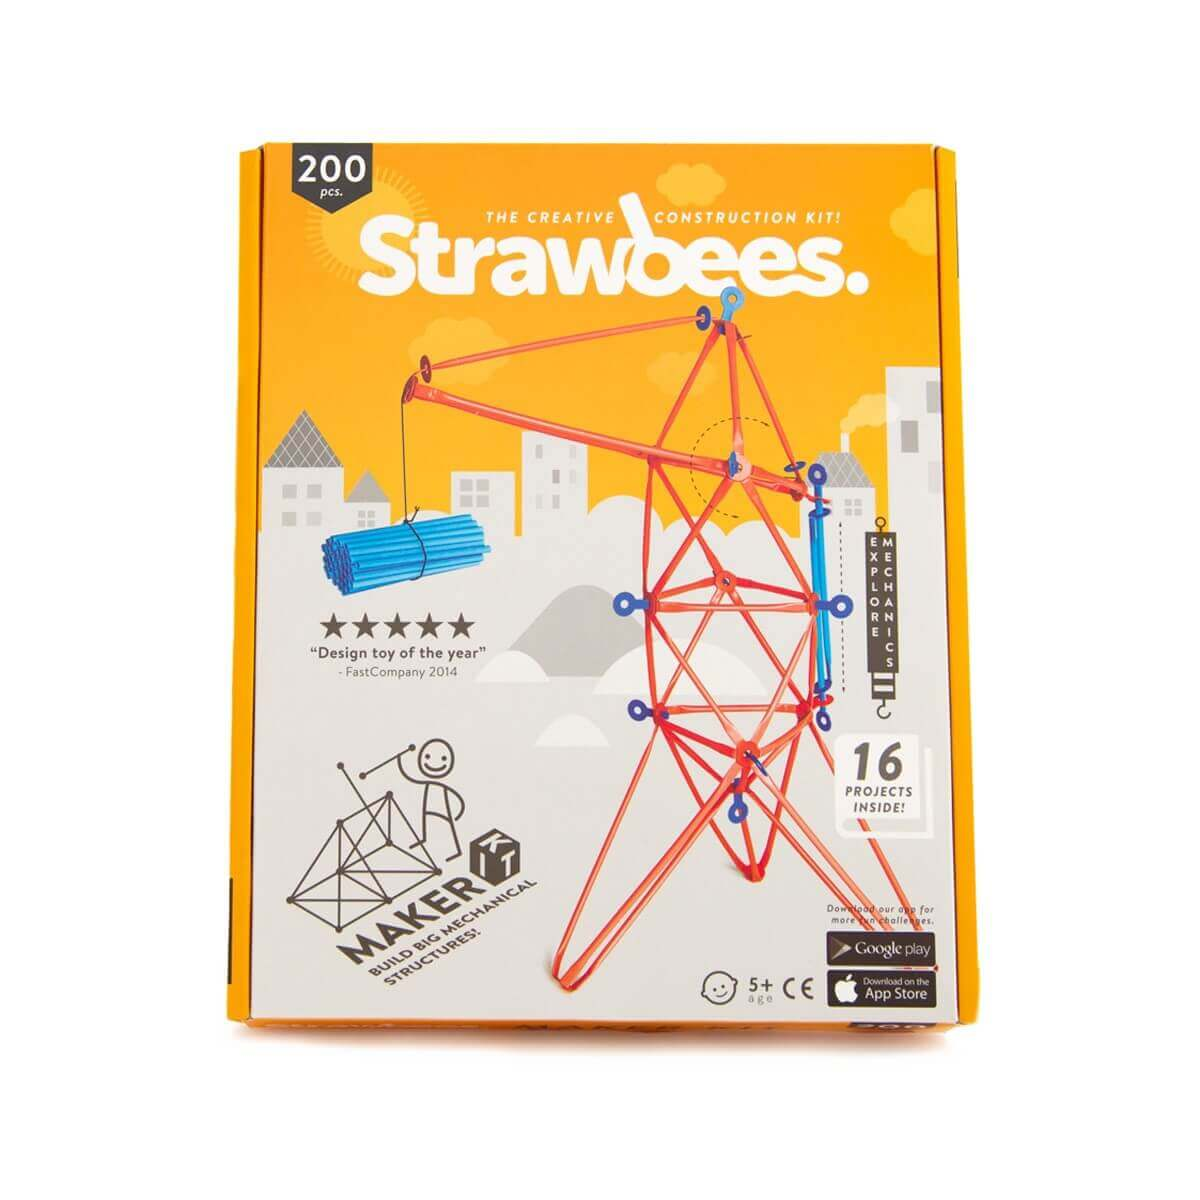 Circuit Scribe Basic Kit Teamkids Invention Draw Circuits Instantly With Conductive Strawbees Maker